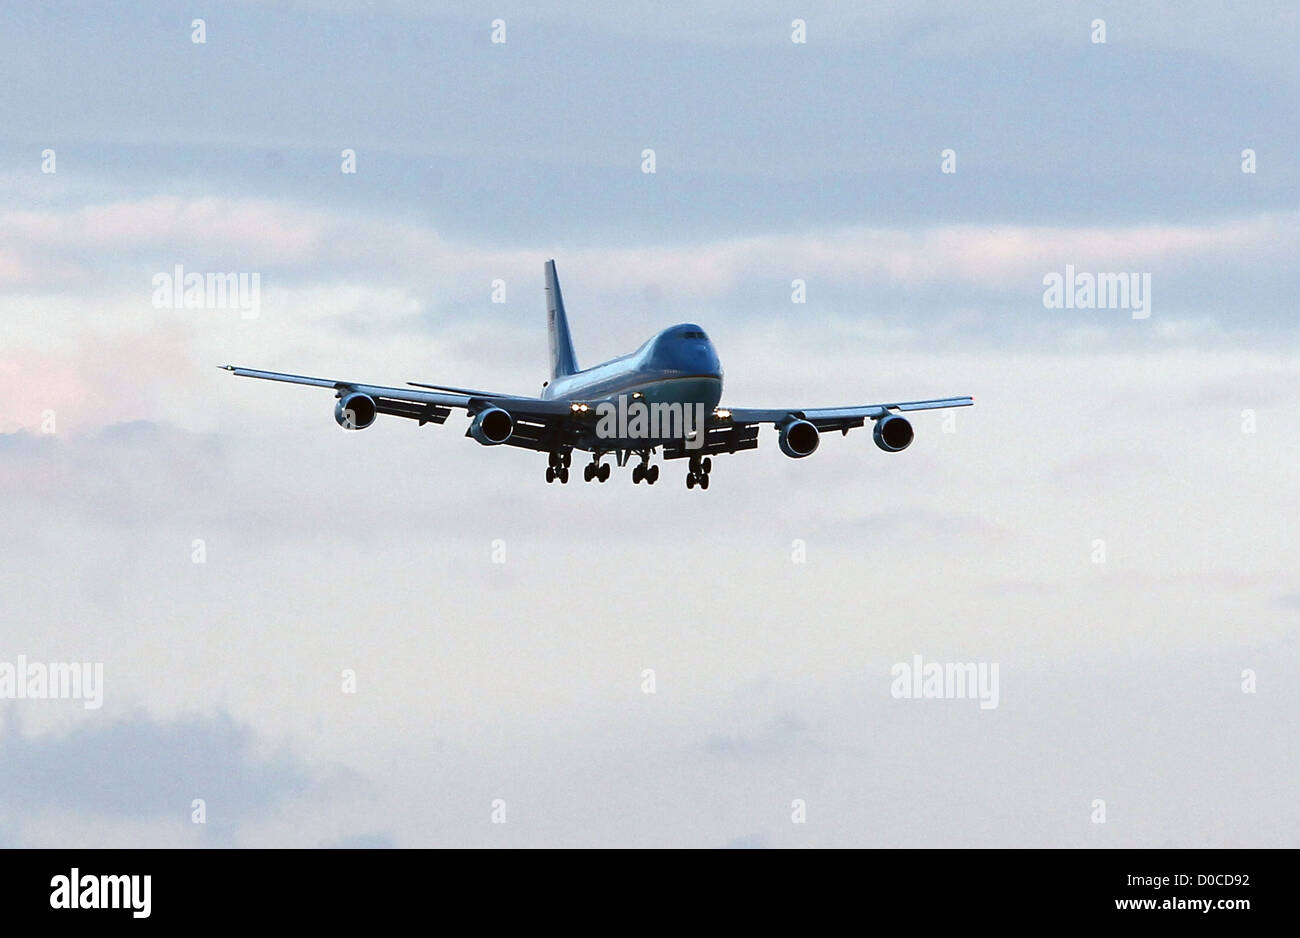 Air Force One President Barack Obama arrives at McCarran International Airport Las Vegas, Nevada - 22.10.10 - Stock Image